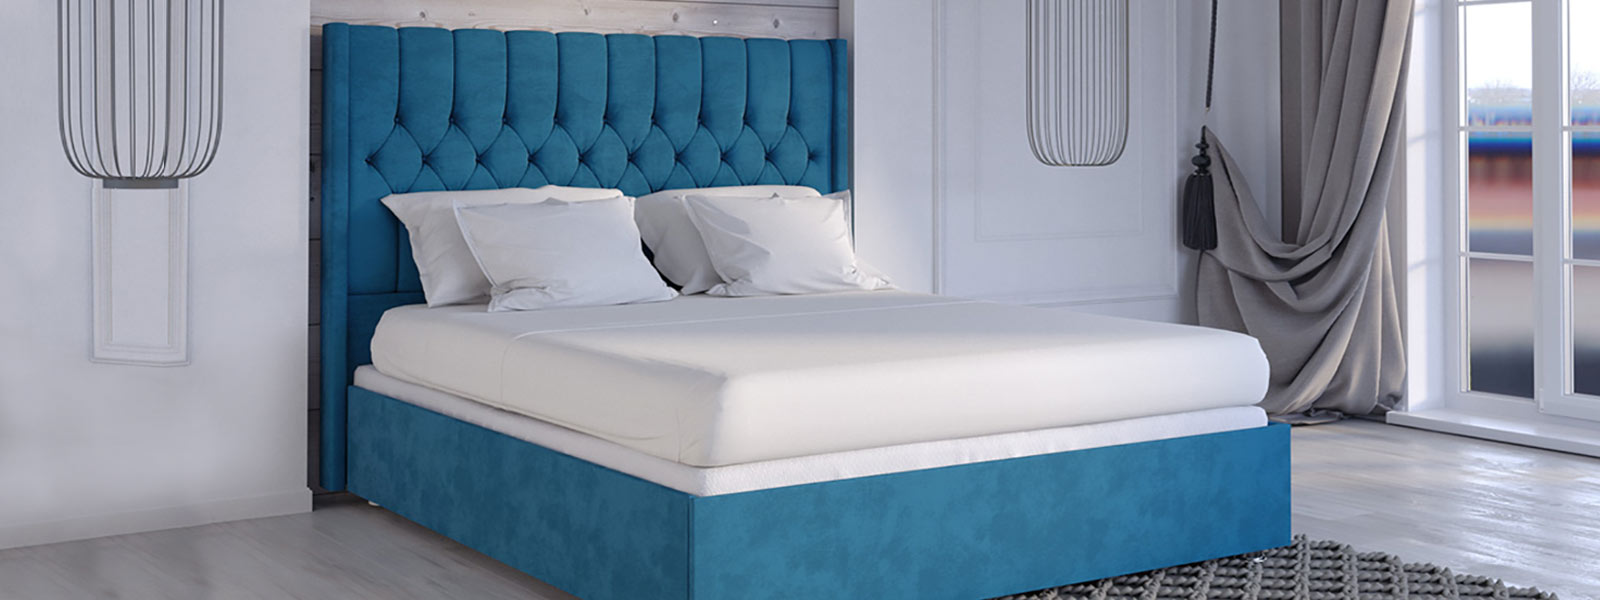 Mattress In Canada Mattresses Furniture And Bedding Canada Sleep Paradise